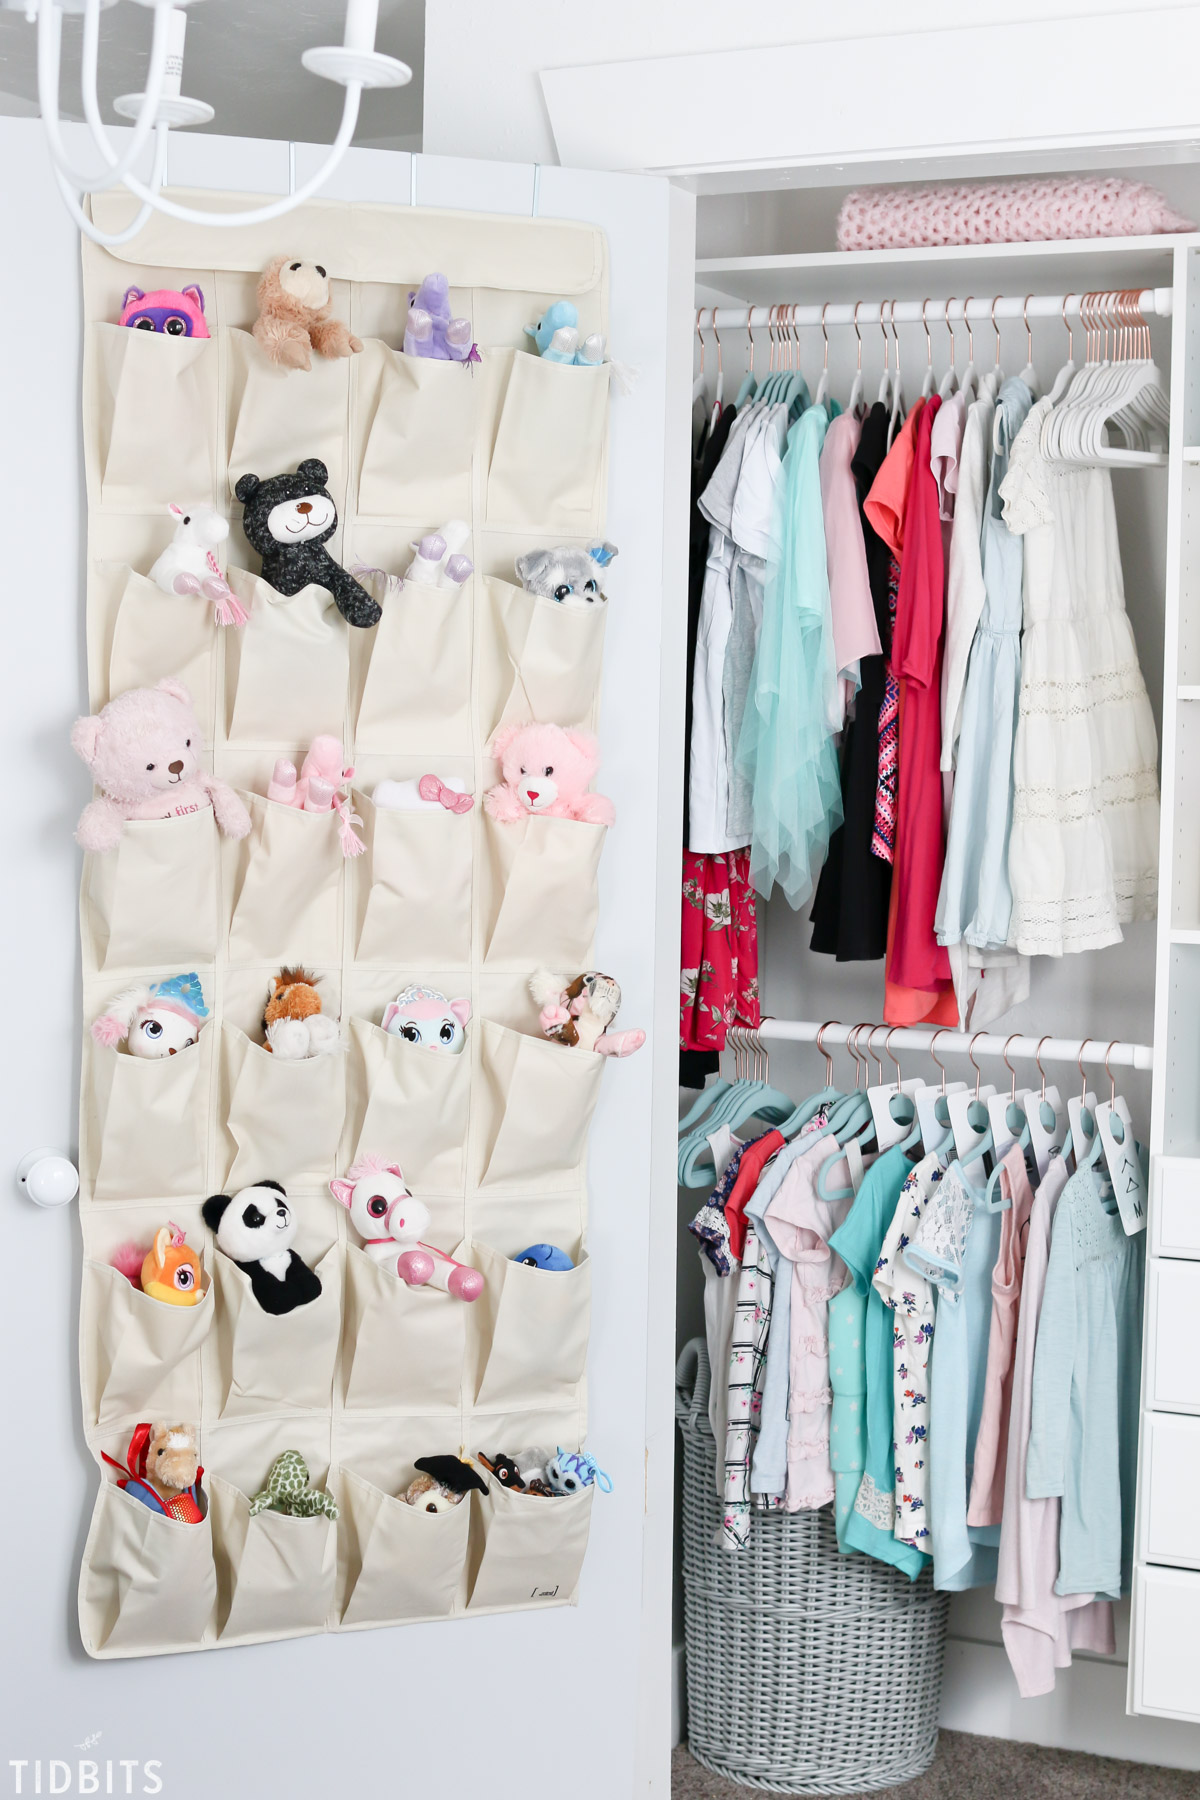 Kids closet organization for stuffed animals